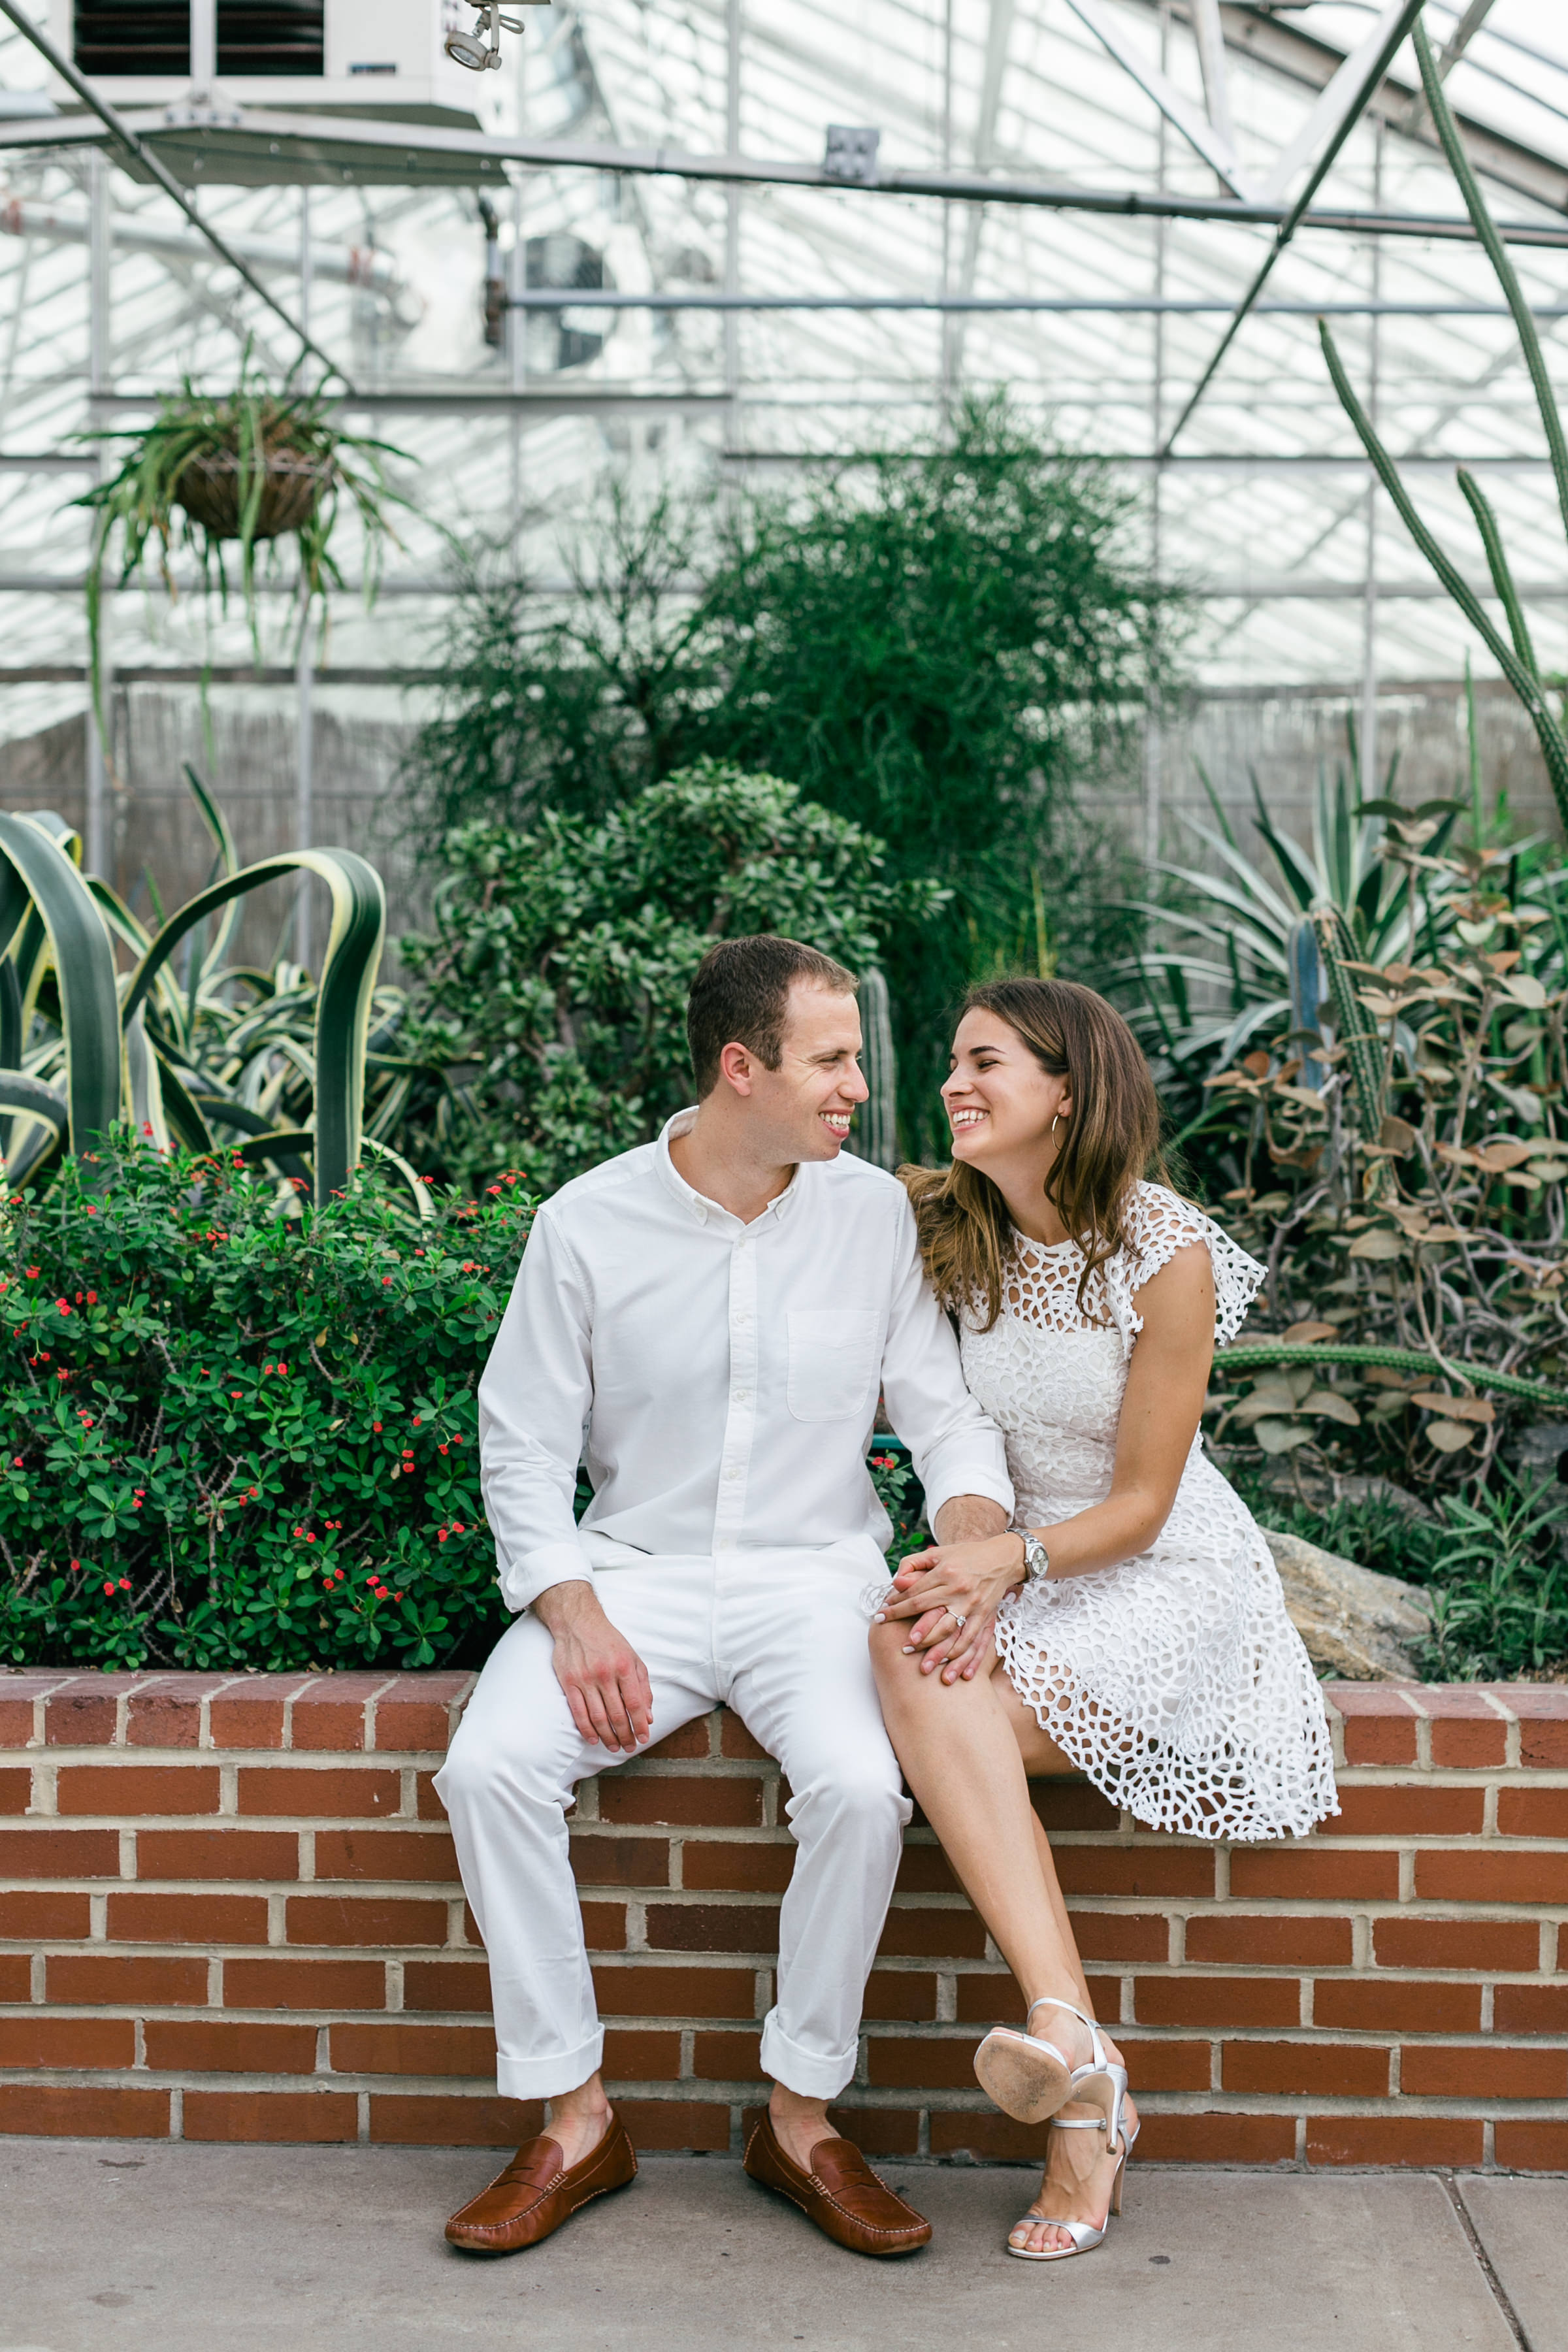 photography-family-natural-candid-engaged-fairmount-philadelphia-wedding-horticultural center-modern-lifestyle-11.JPG